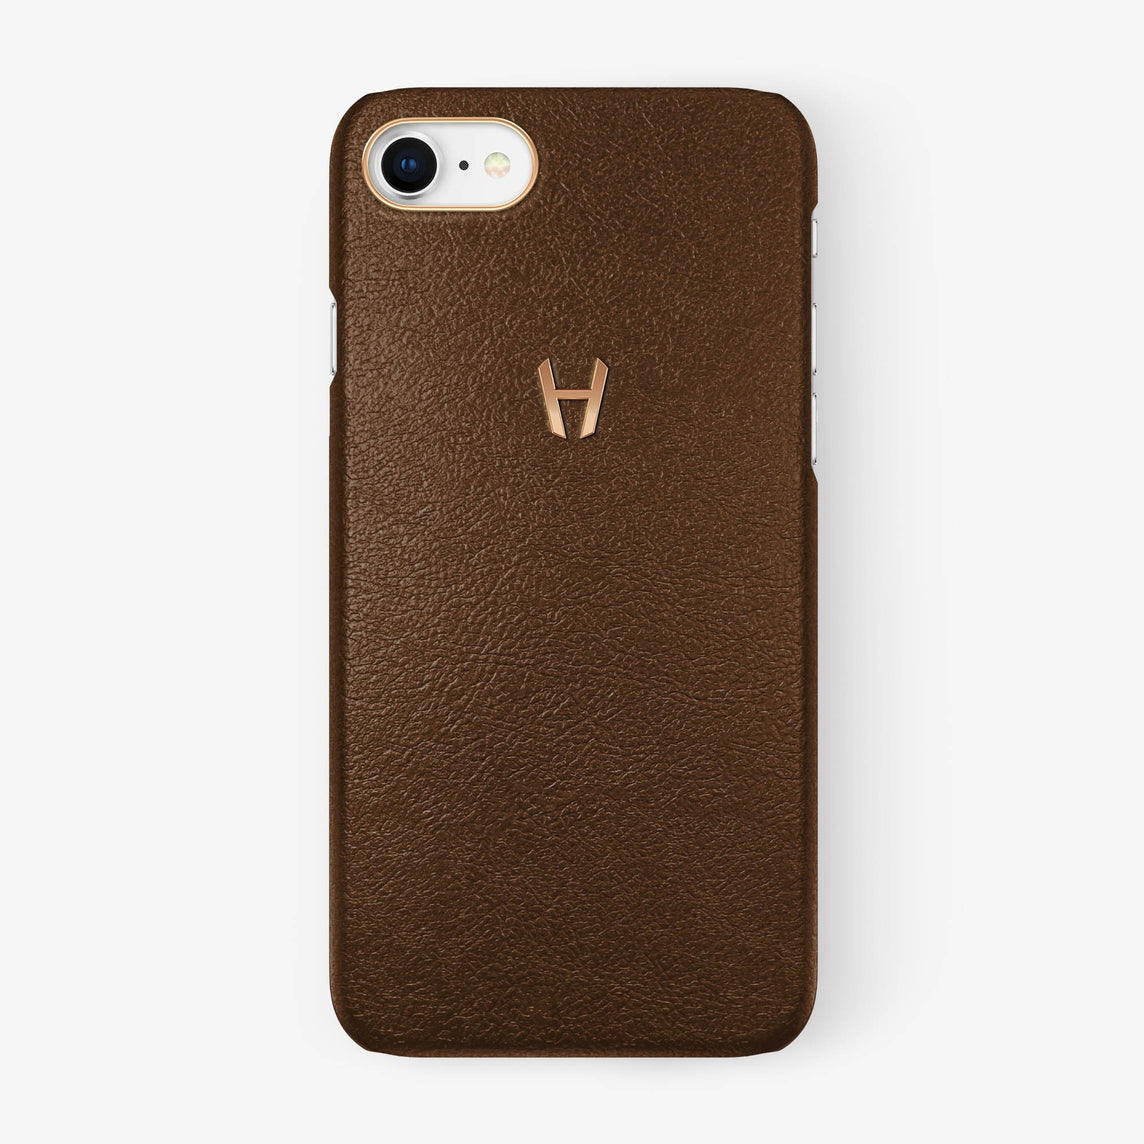 Brown Calfskin iPhone Case for iPhone 7/8 finishing rose gold - Hadoro Luxury Cases